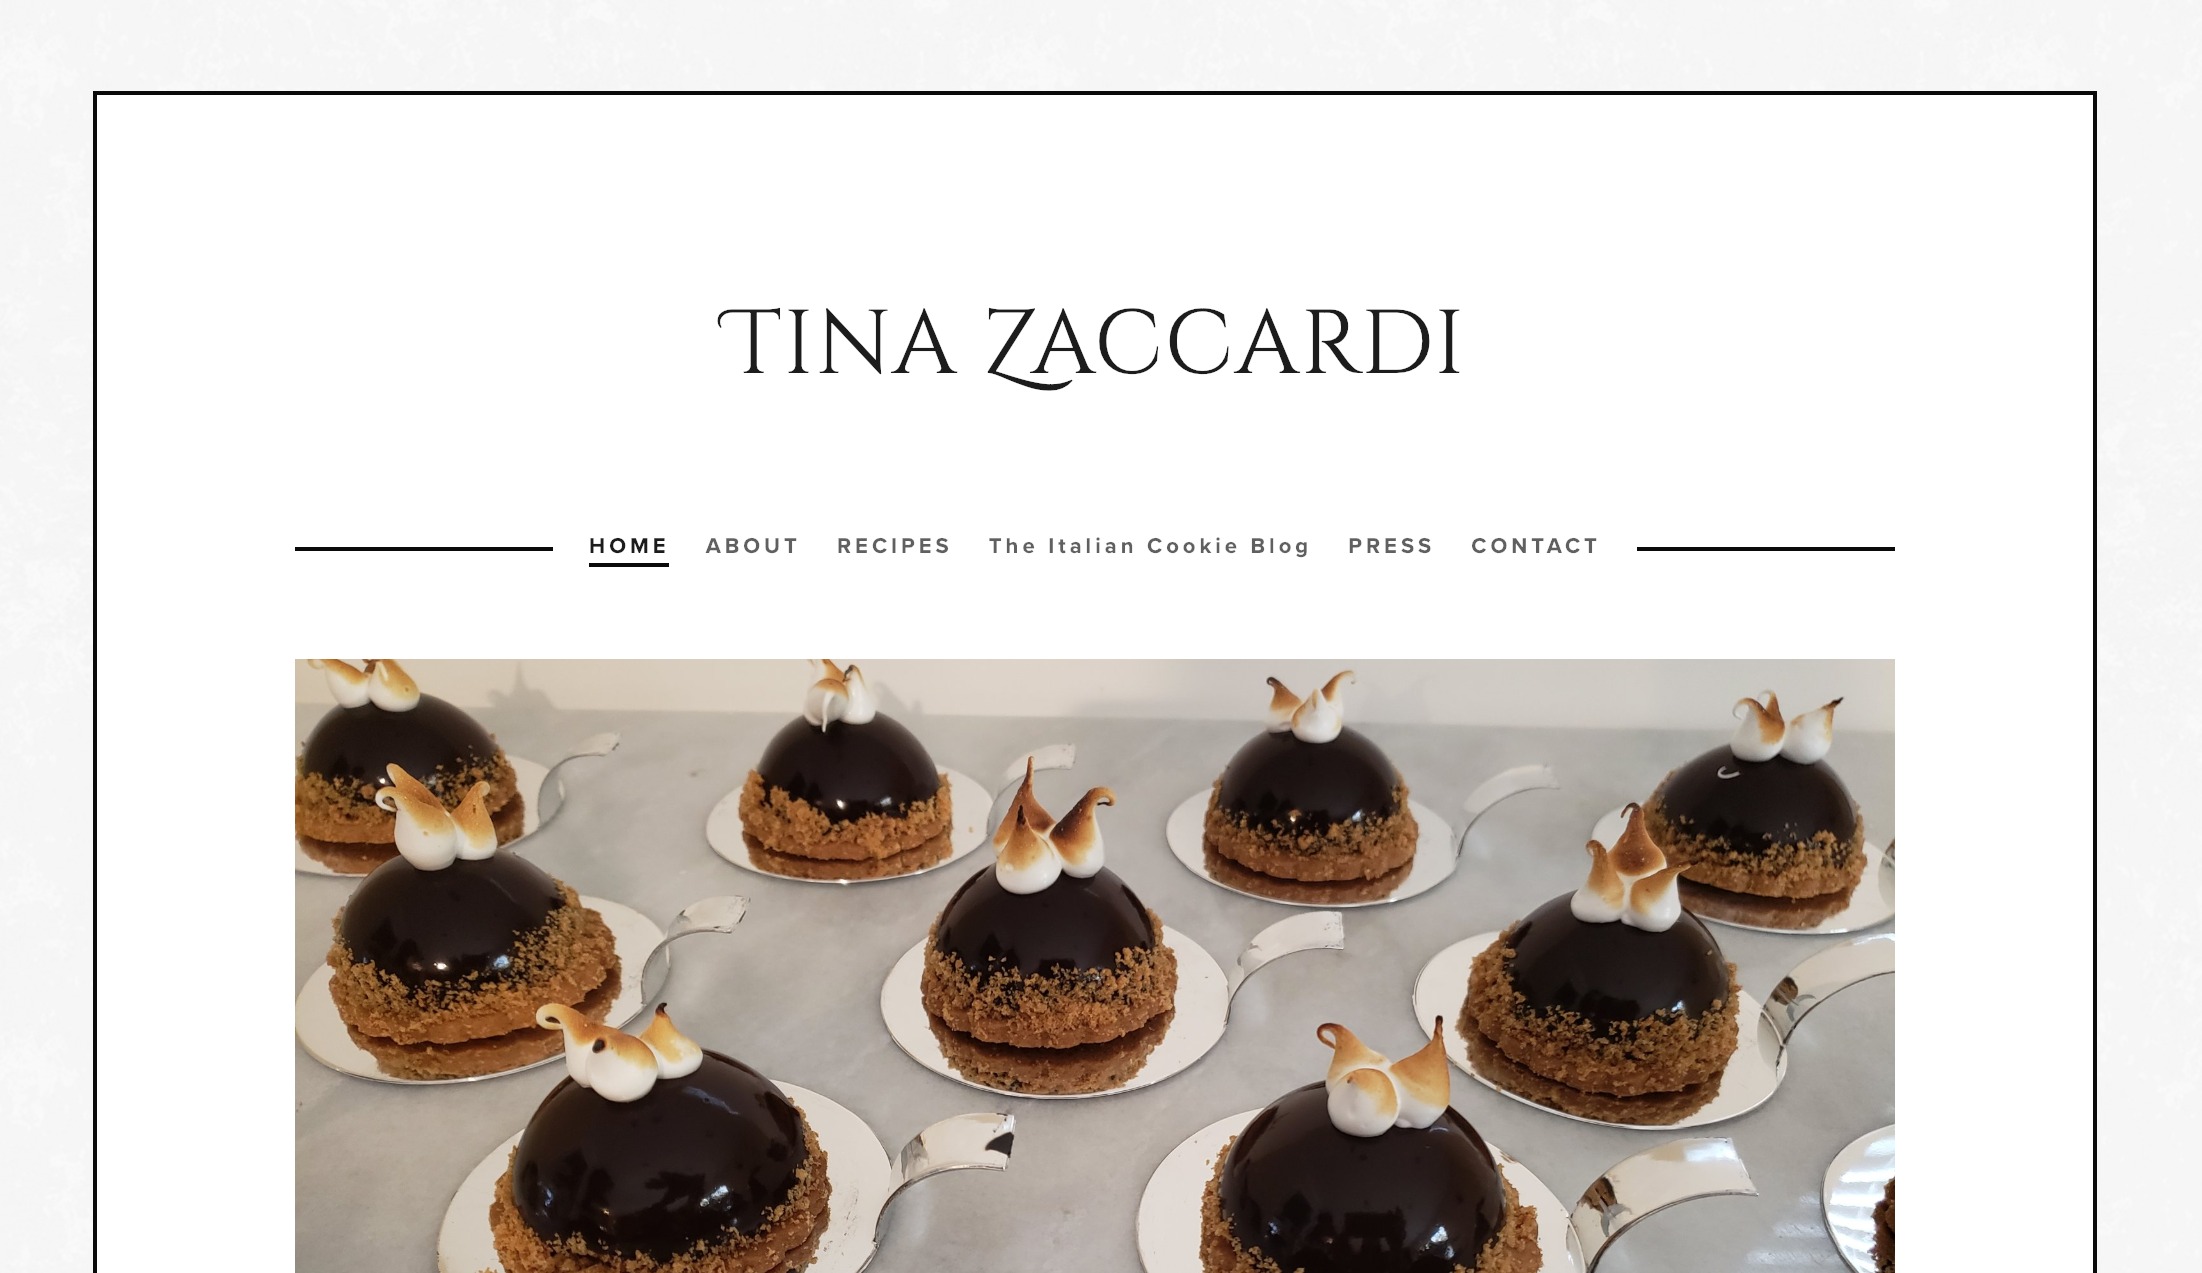 Tina Zaccardi – The Italian Cookie